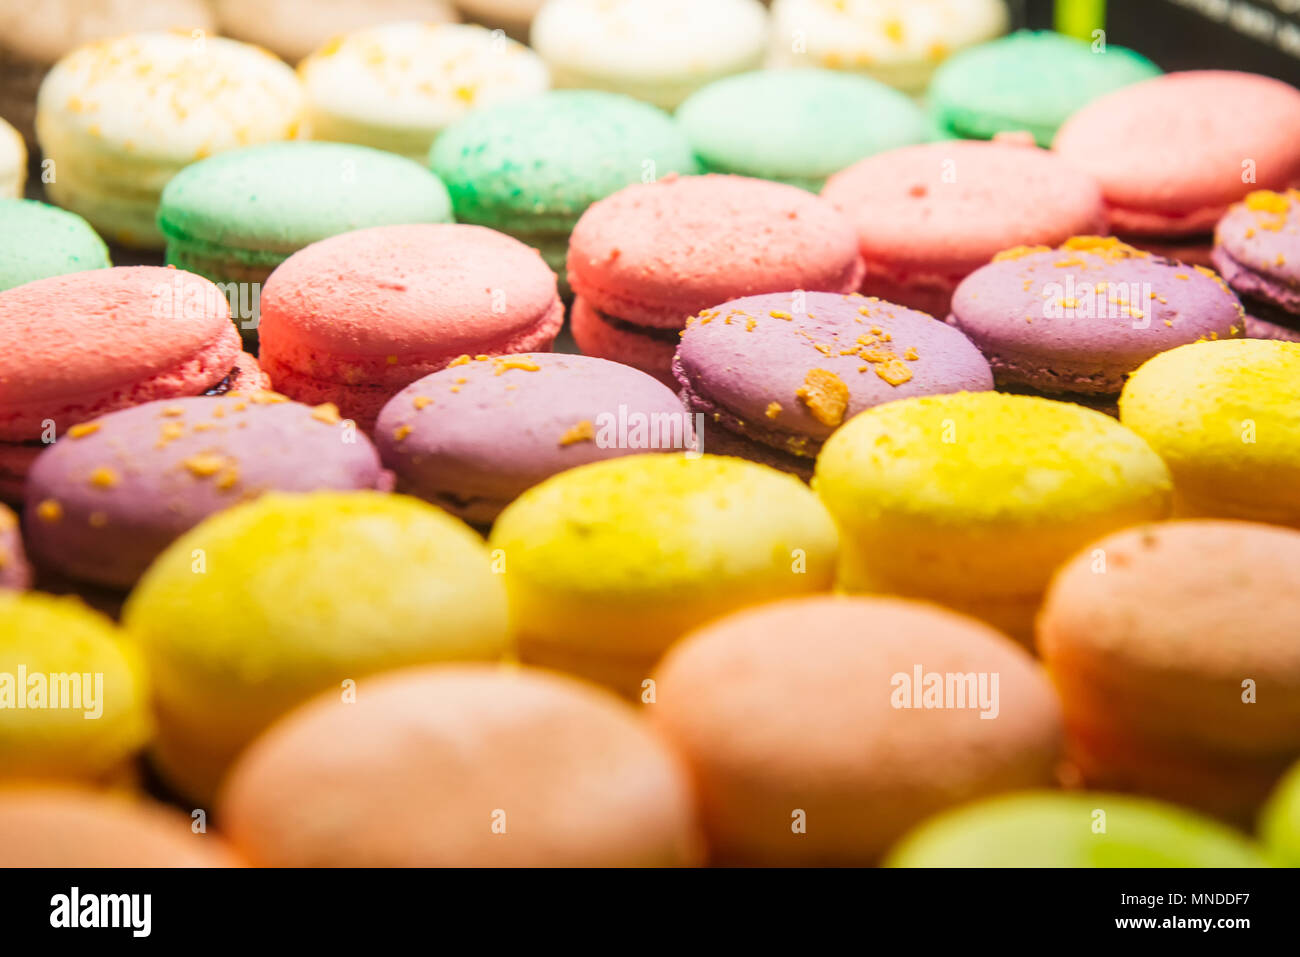 Assortment of Colorful macarons for sale in shop. Rows of macaroons in candy shop, storefront with sweets, cafe showcase. Traditional french almond ca - Stock Image